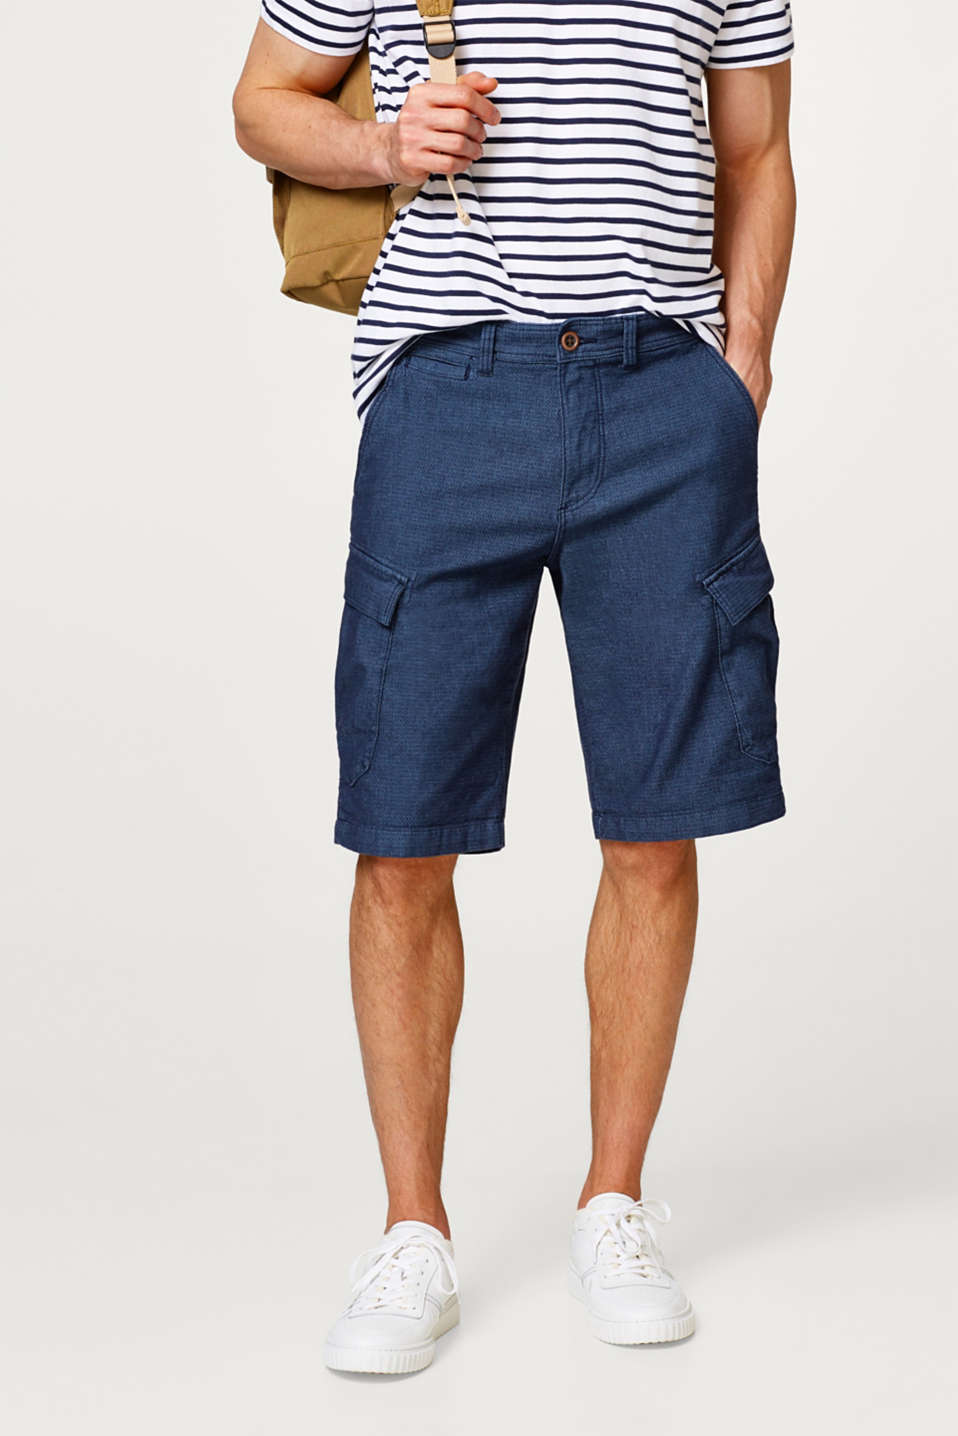 Esprit - Textured denim Bermudas in a cargo style